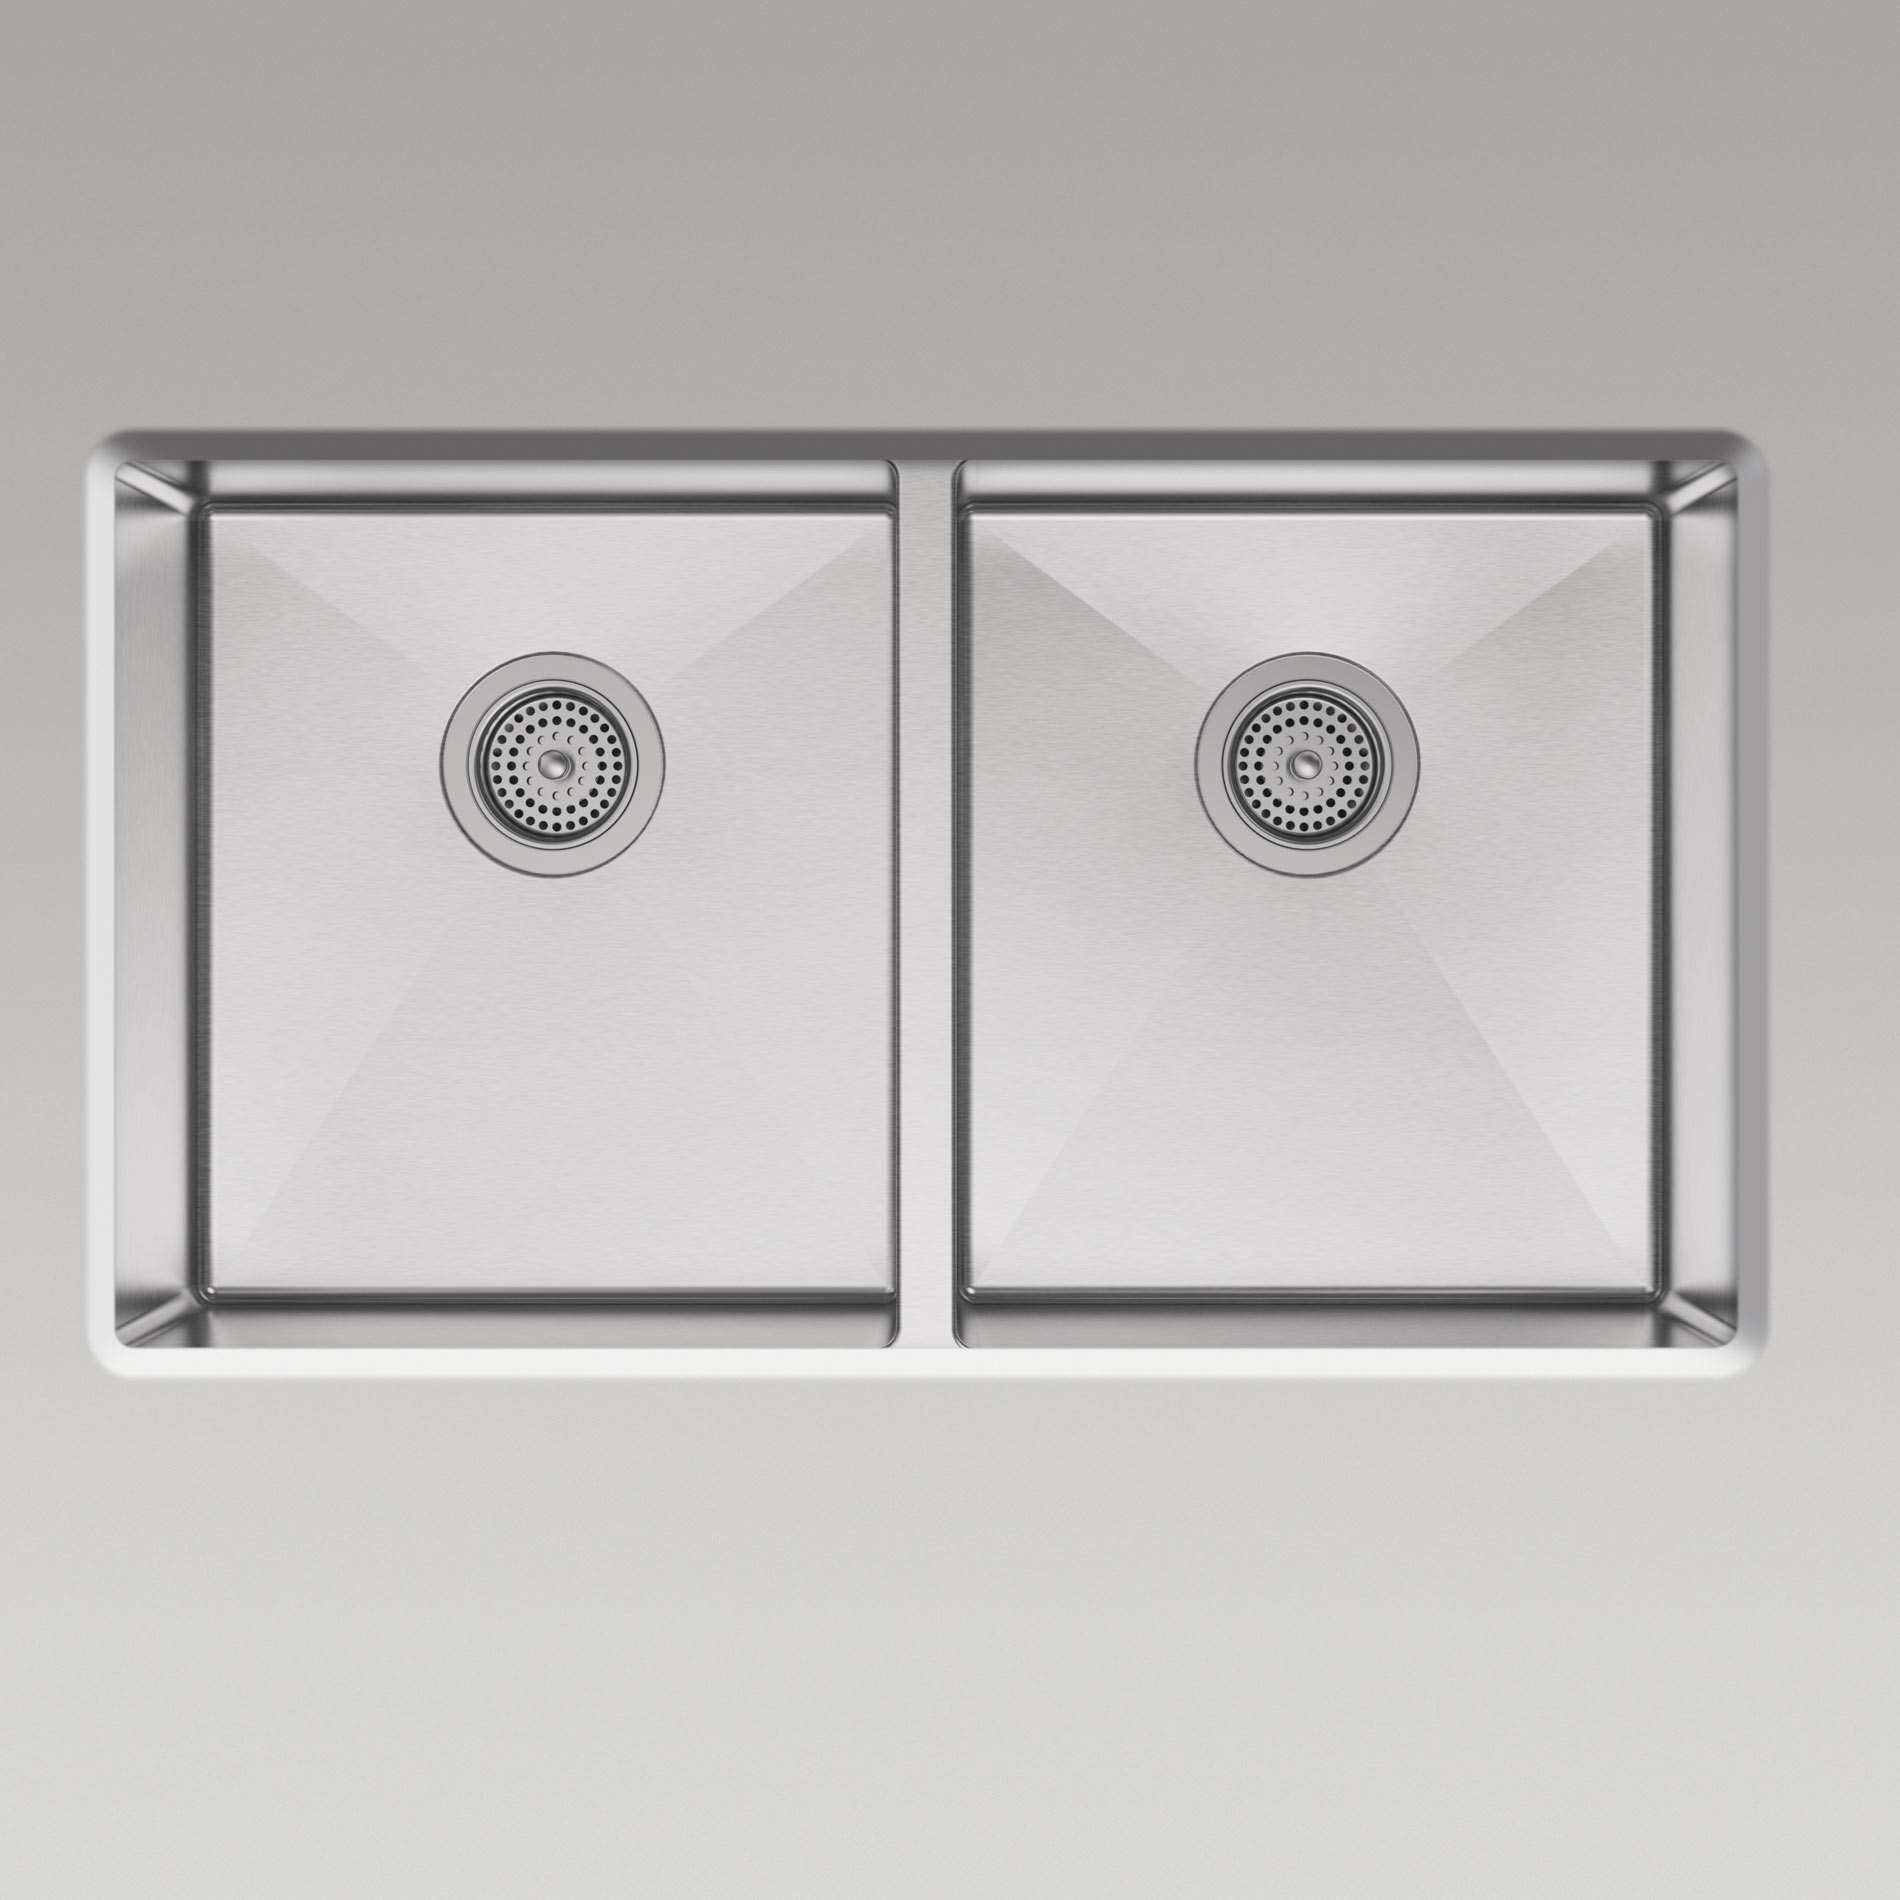 Picture of Strive 5281-NA Stainless Steel Sink